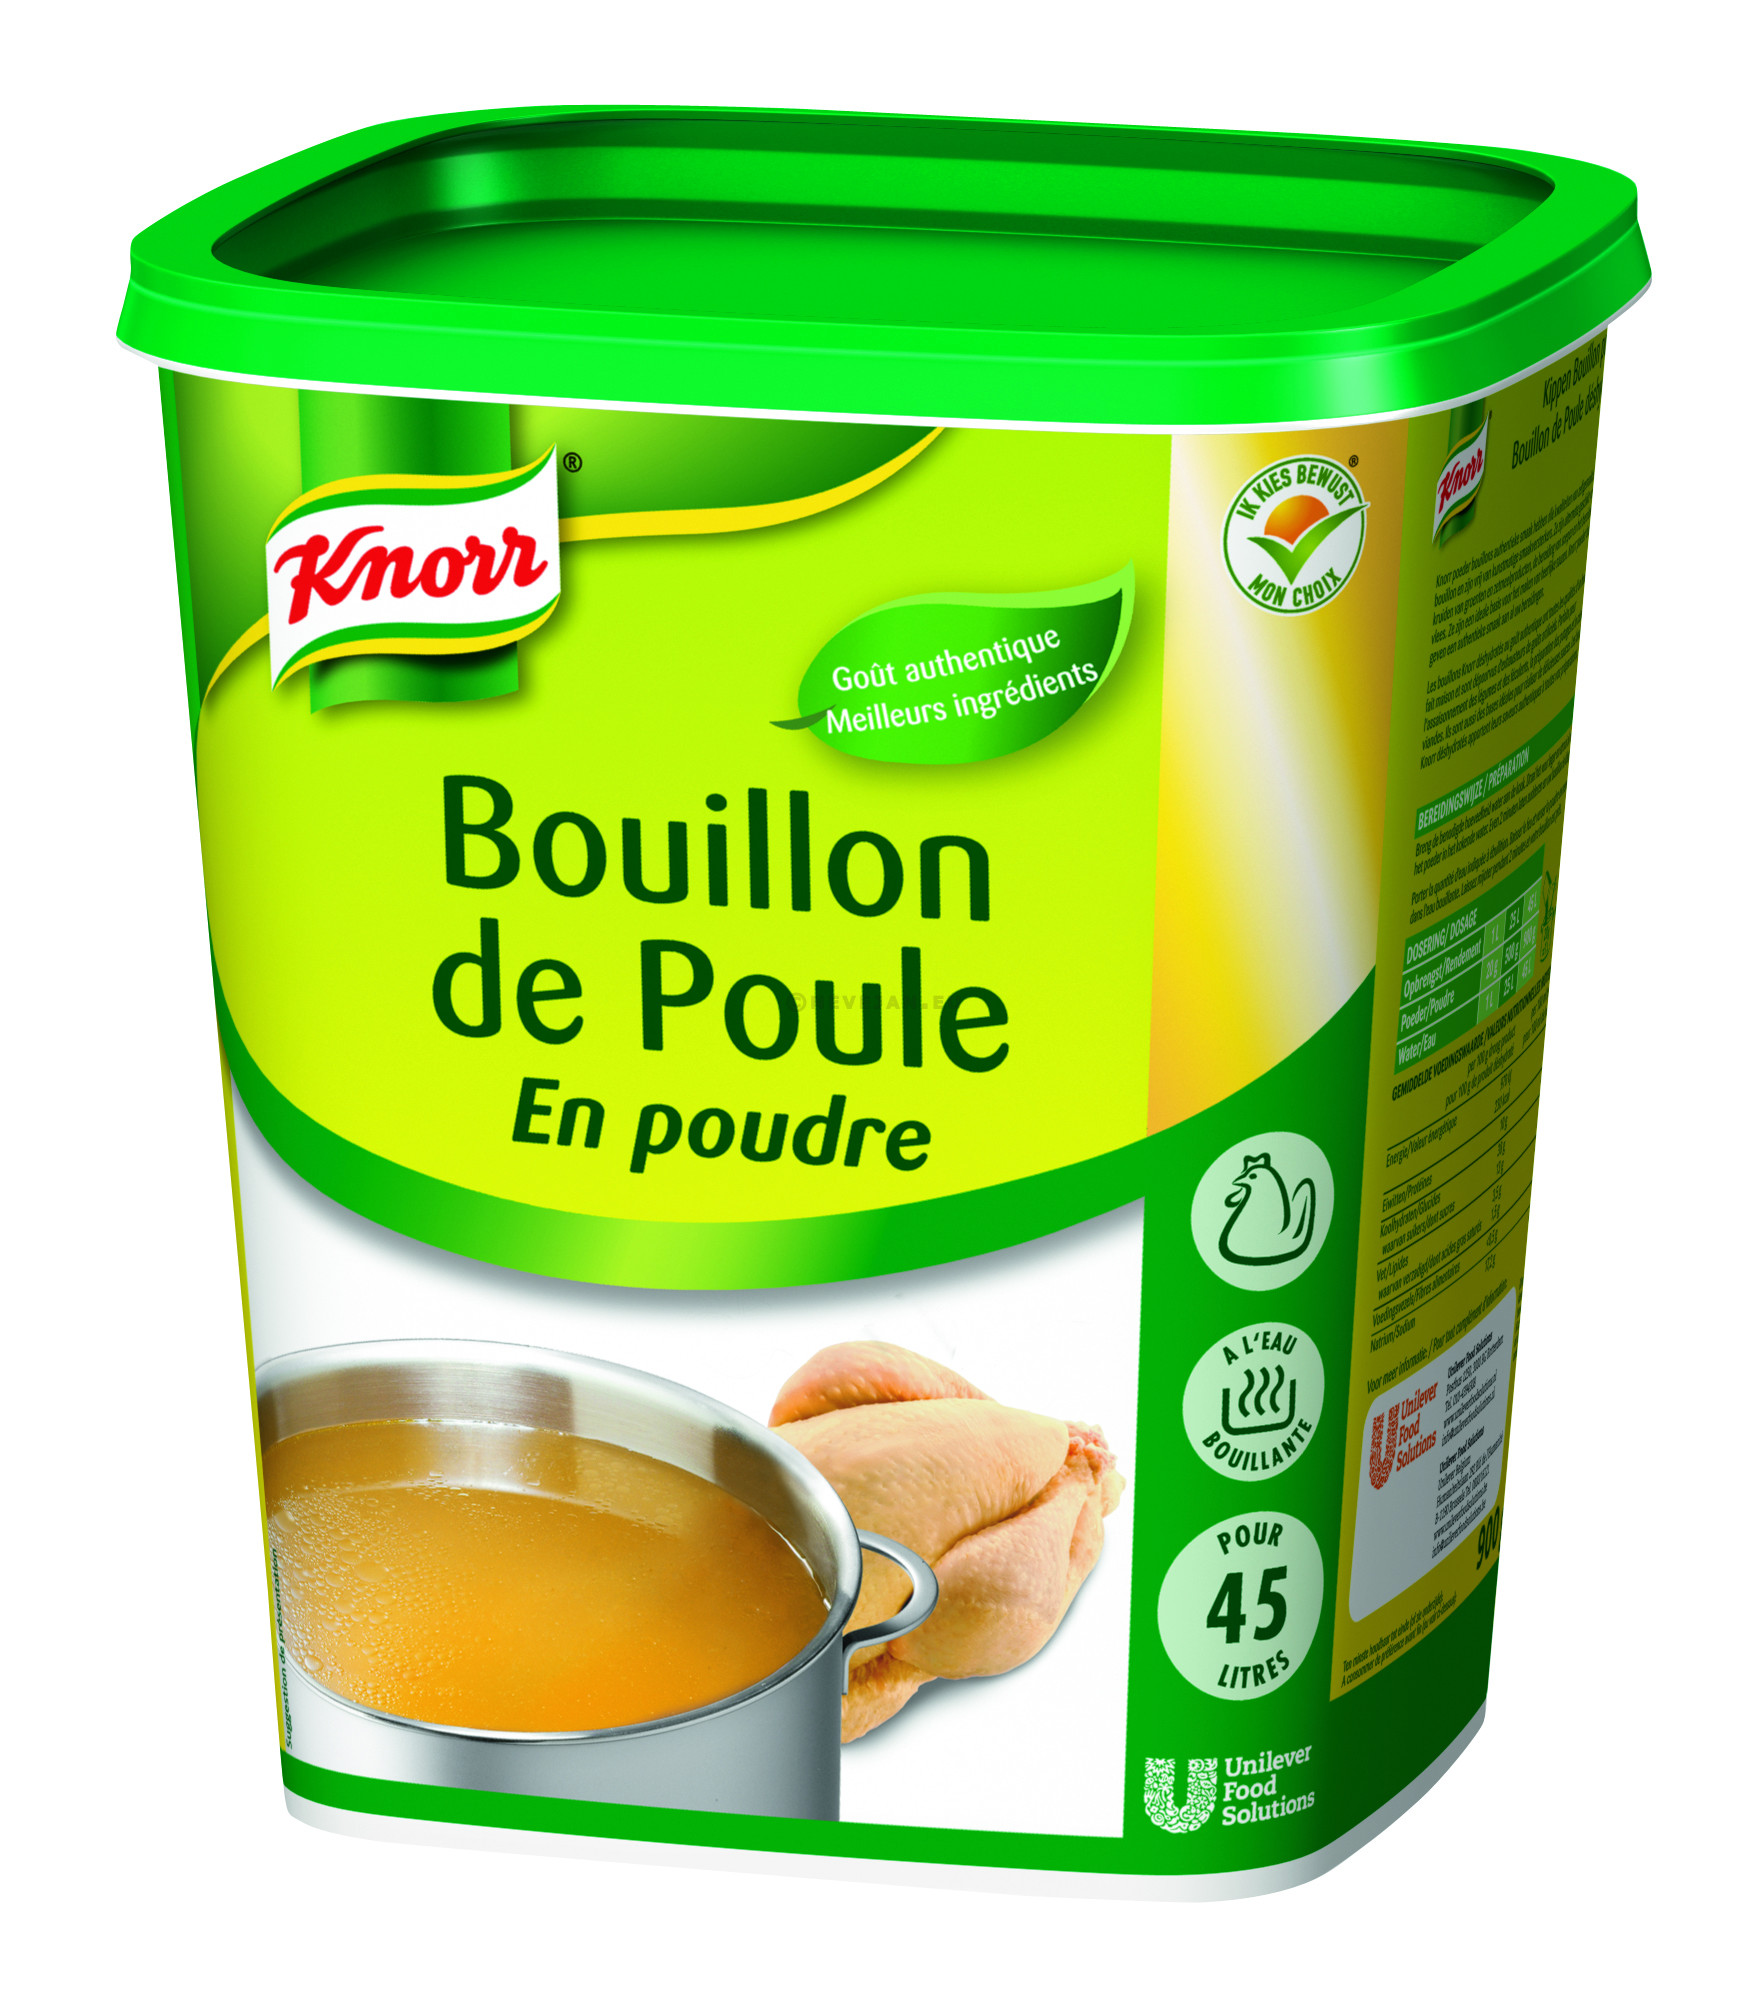 Knorr Gastronom chicken bouillon granulated 1kg Professional